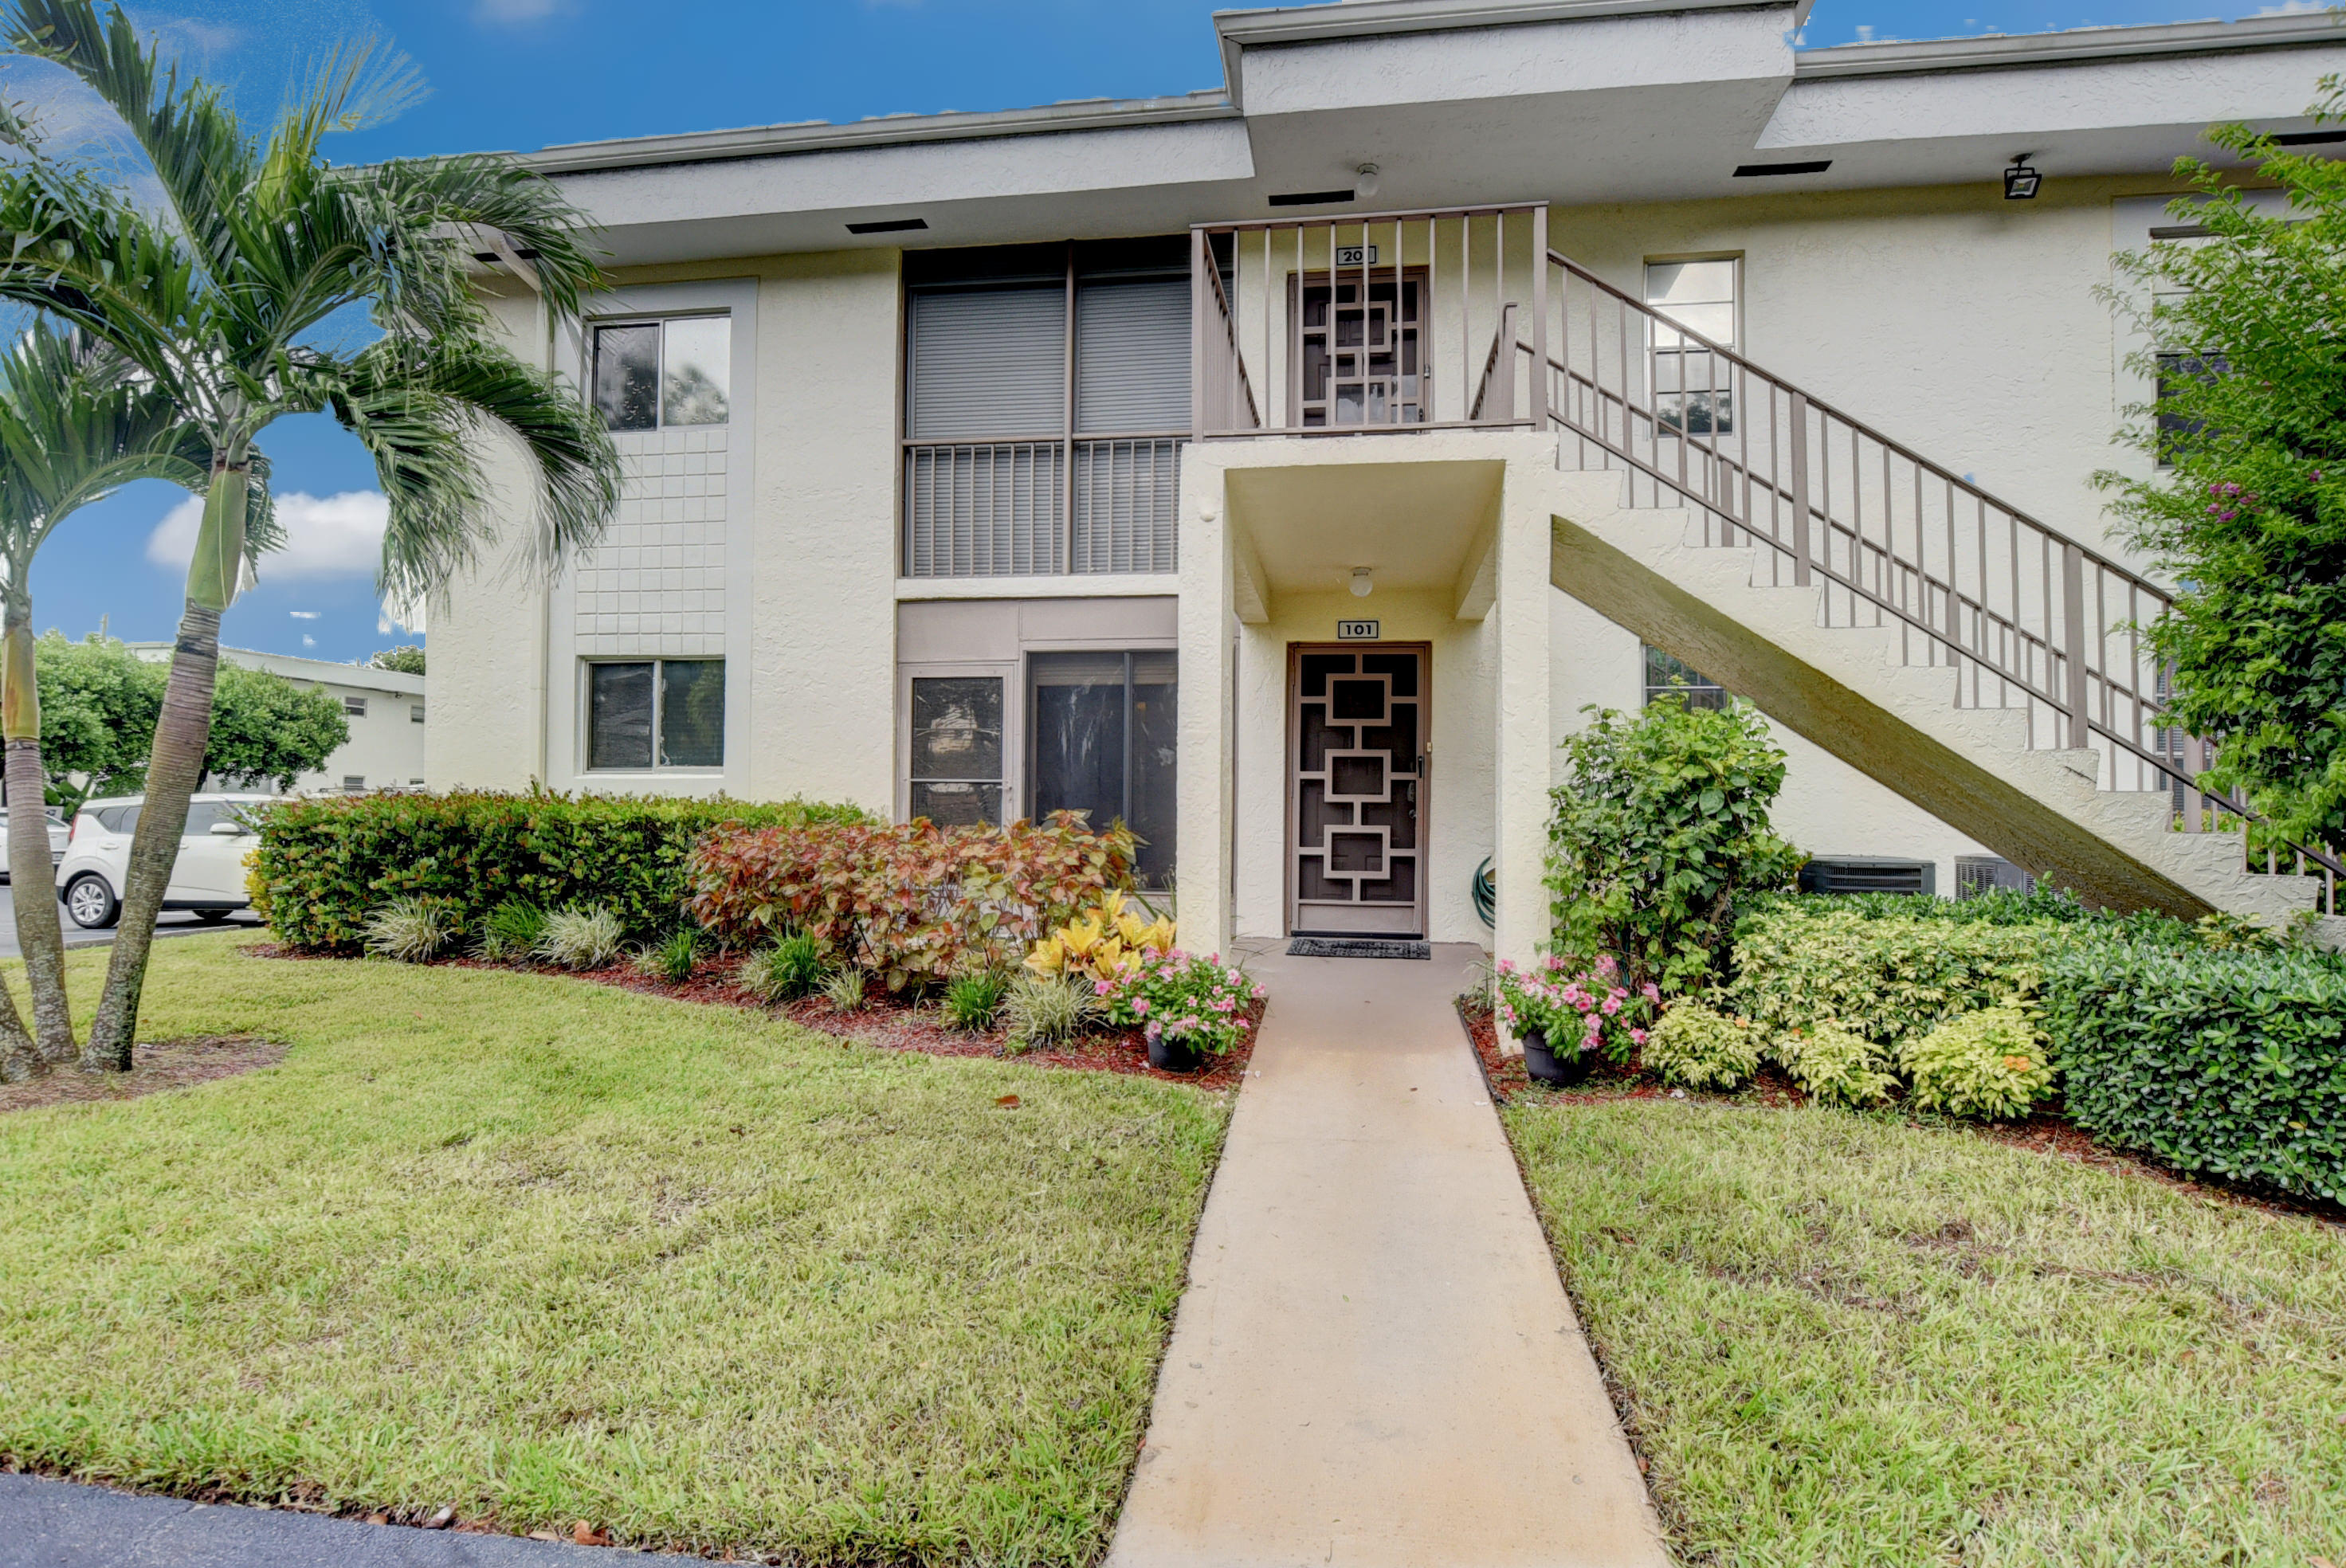 6586 Southurst Unit 101, Delray Beach, Florida 33446